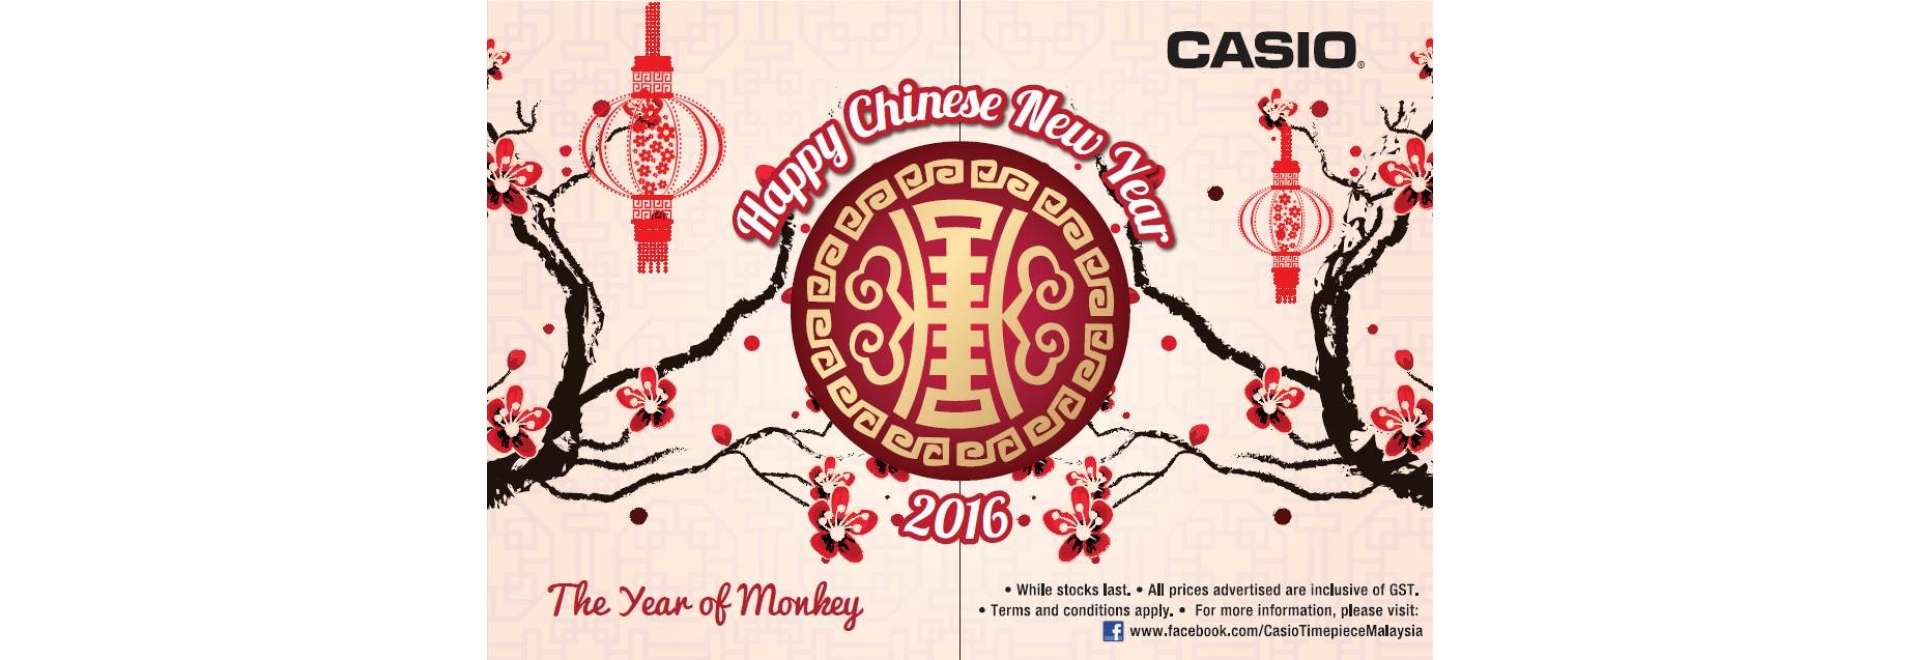 Casio CNY Lunar Promotion